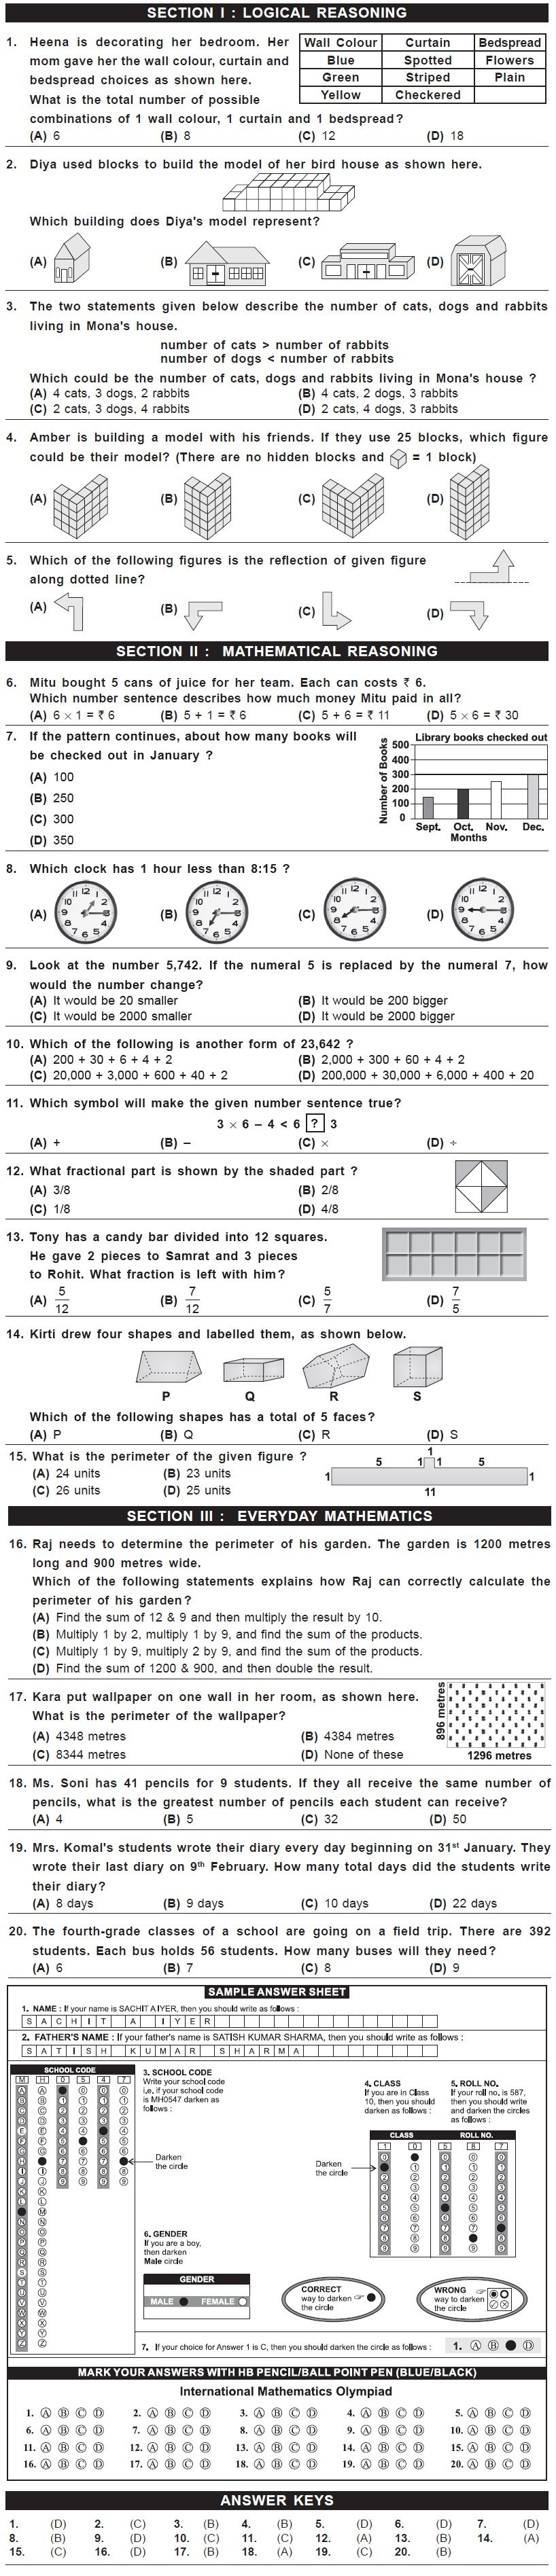 8th Imo Sample Papers For Class 4 2nd Level Exam 2015 2nd